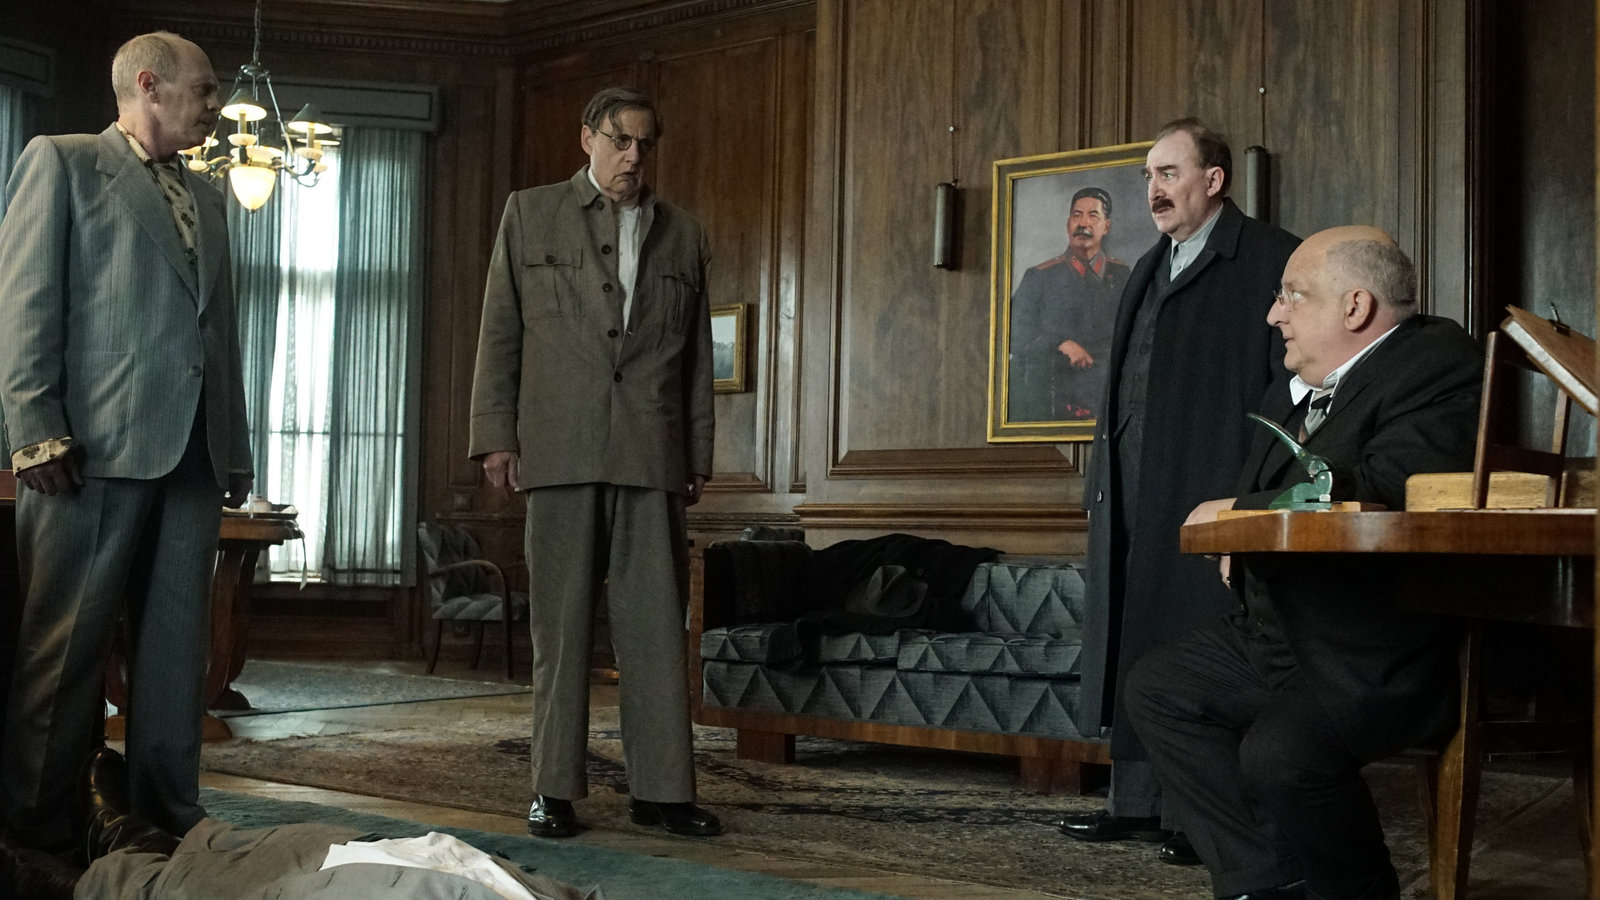 The Death of Stalin 3